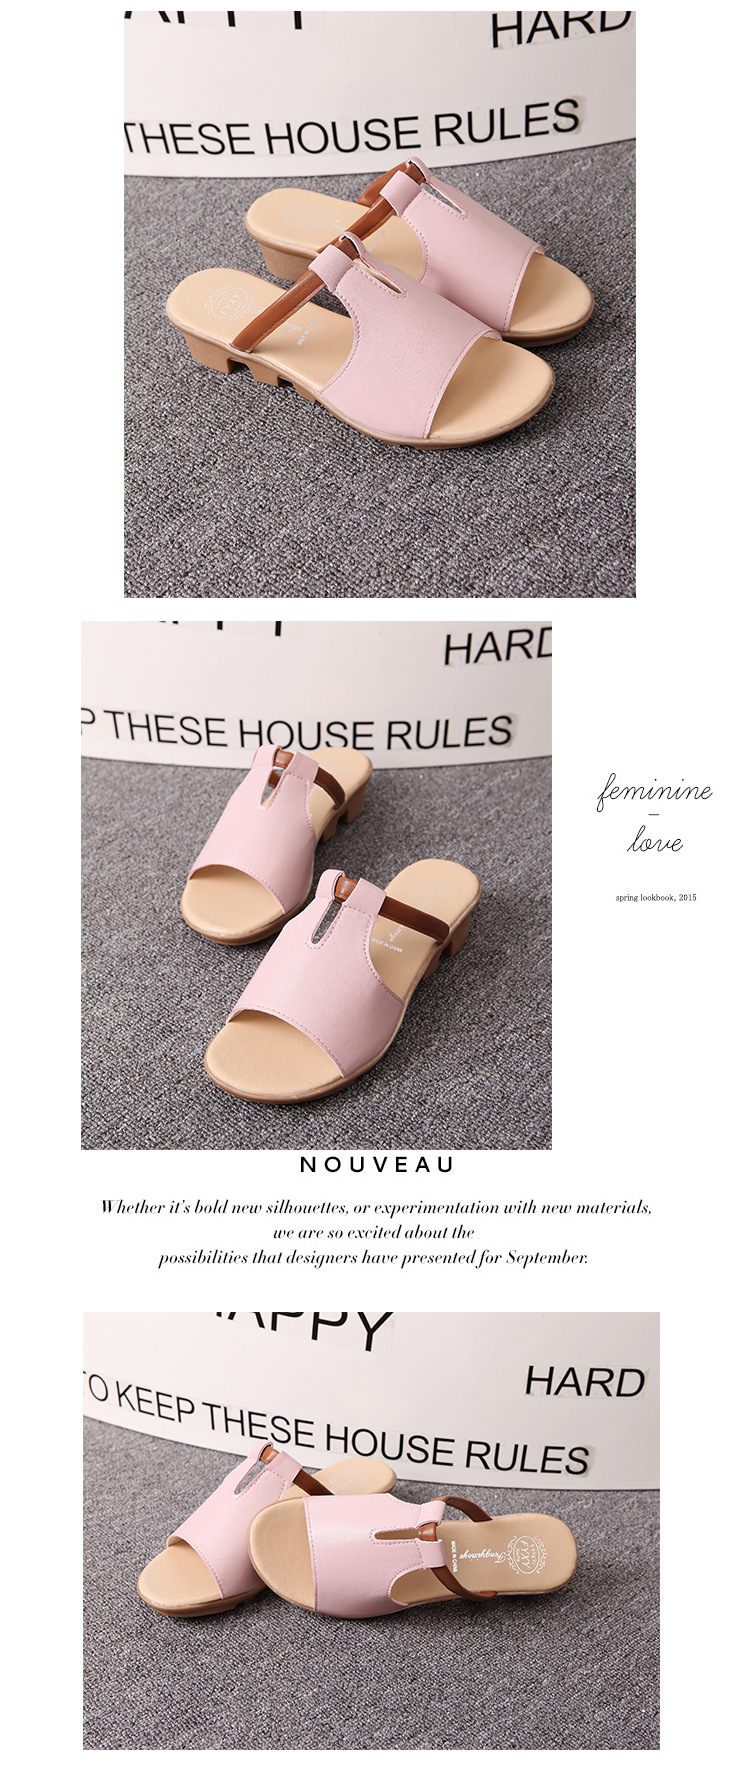 New Summer Slipper Women Slippers Slides Women Sandals Slippers Word Hollow out Women Single Sandals Non-slip Fashion B1210 10